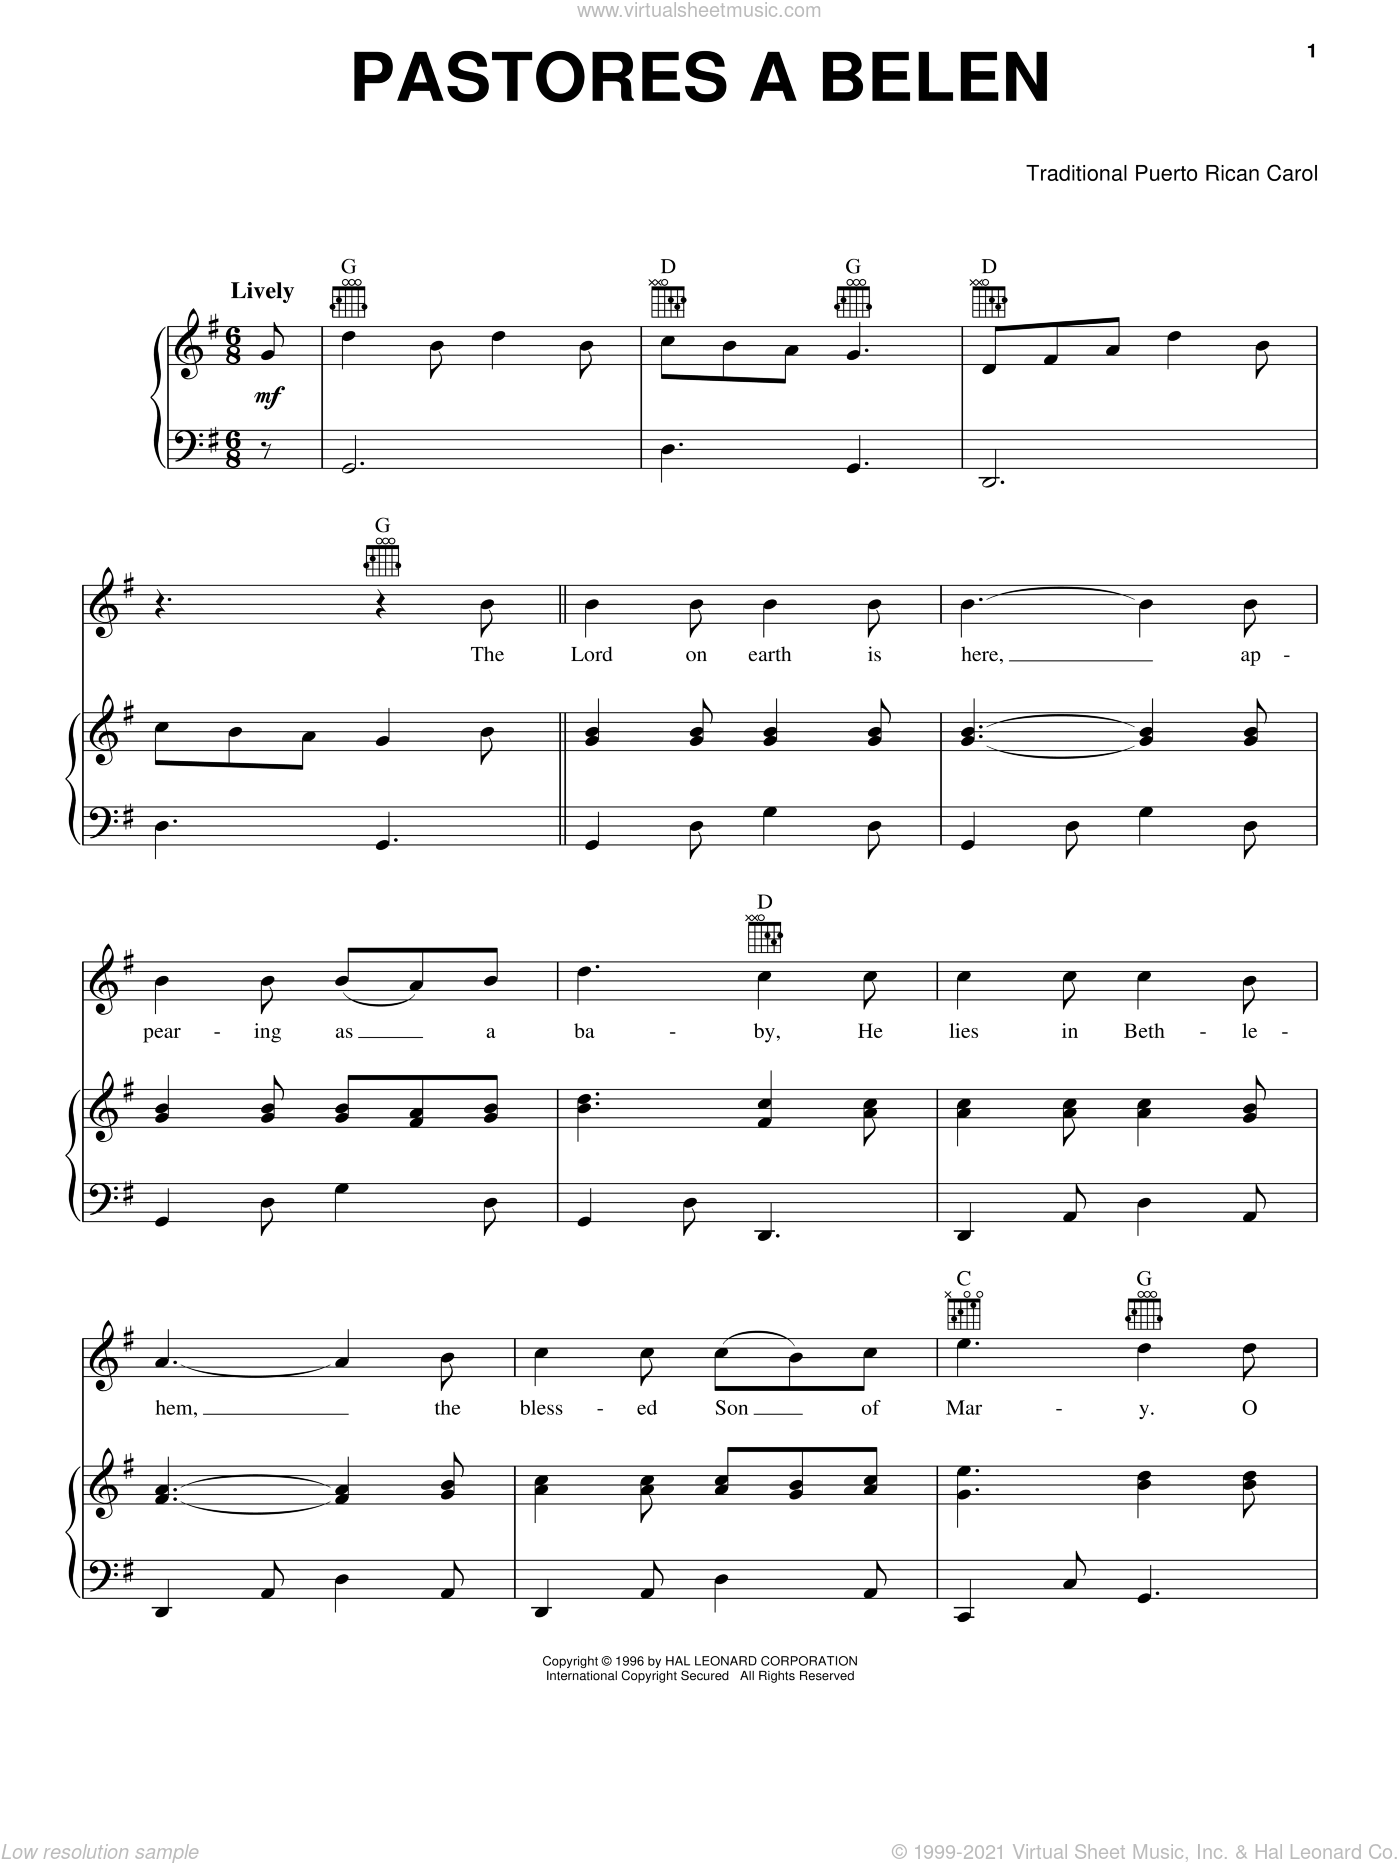 Pastores a Belen sheet music for voice, piano or guitar. Score Image Preview.